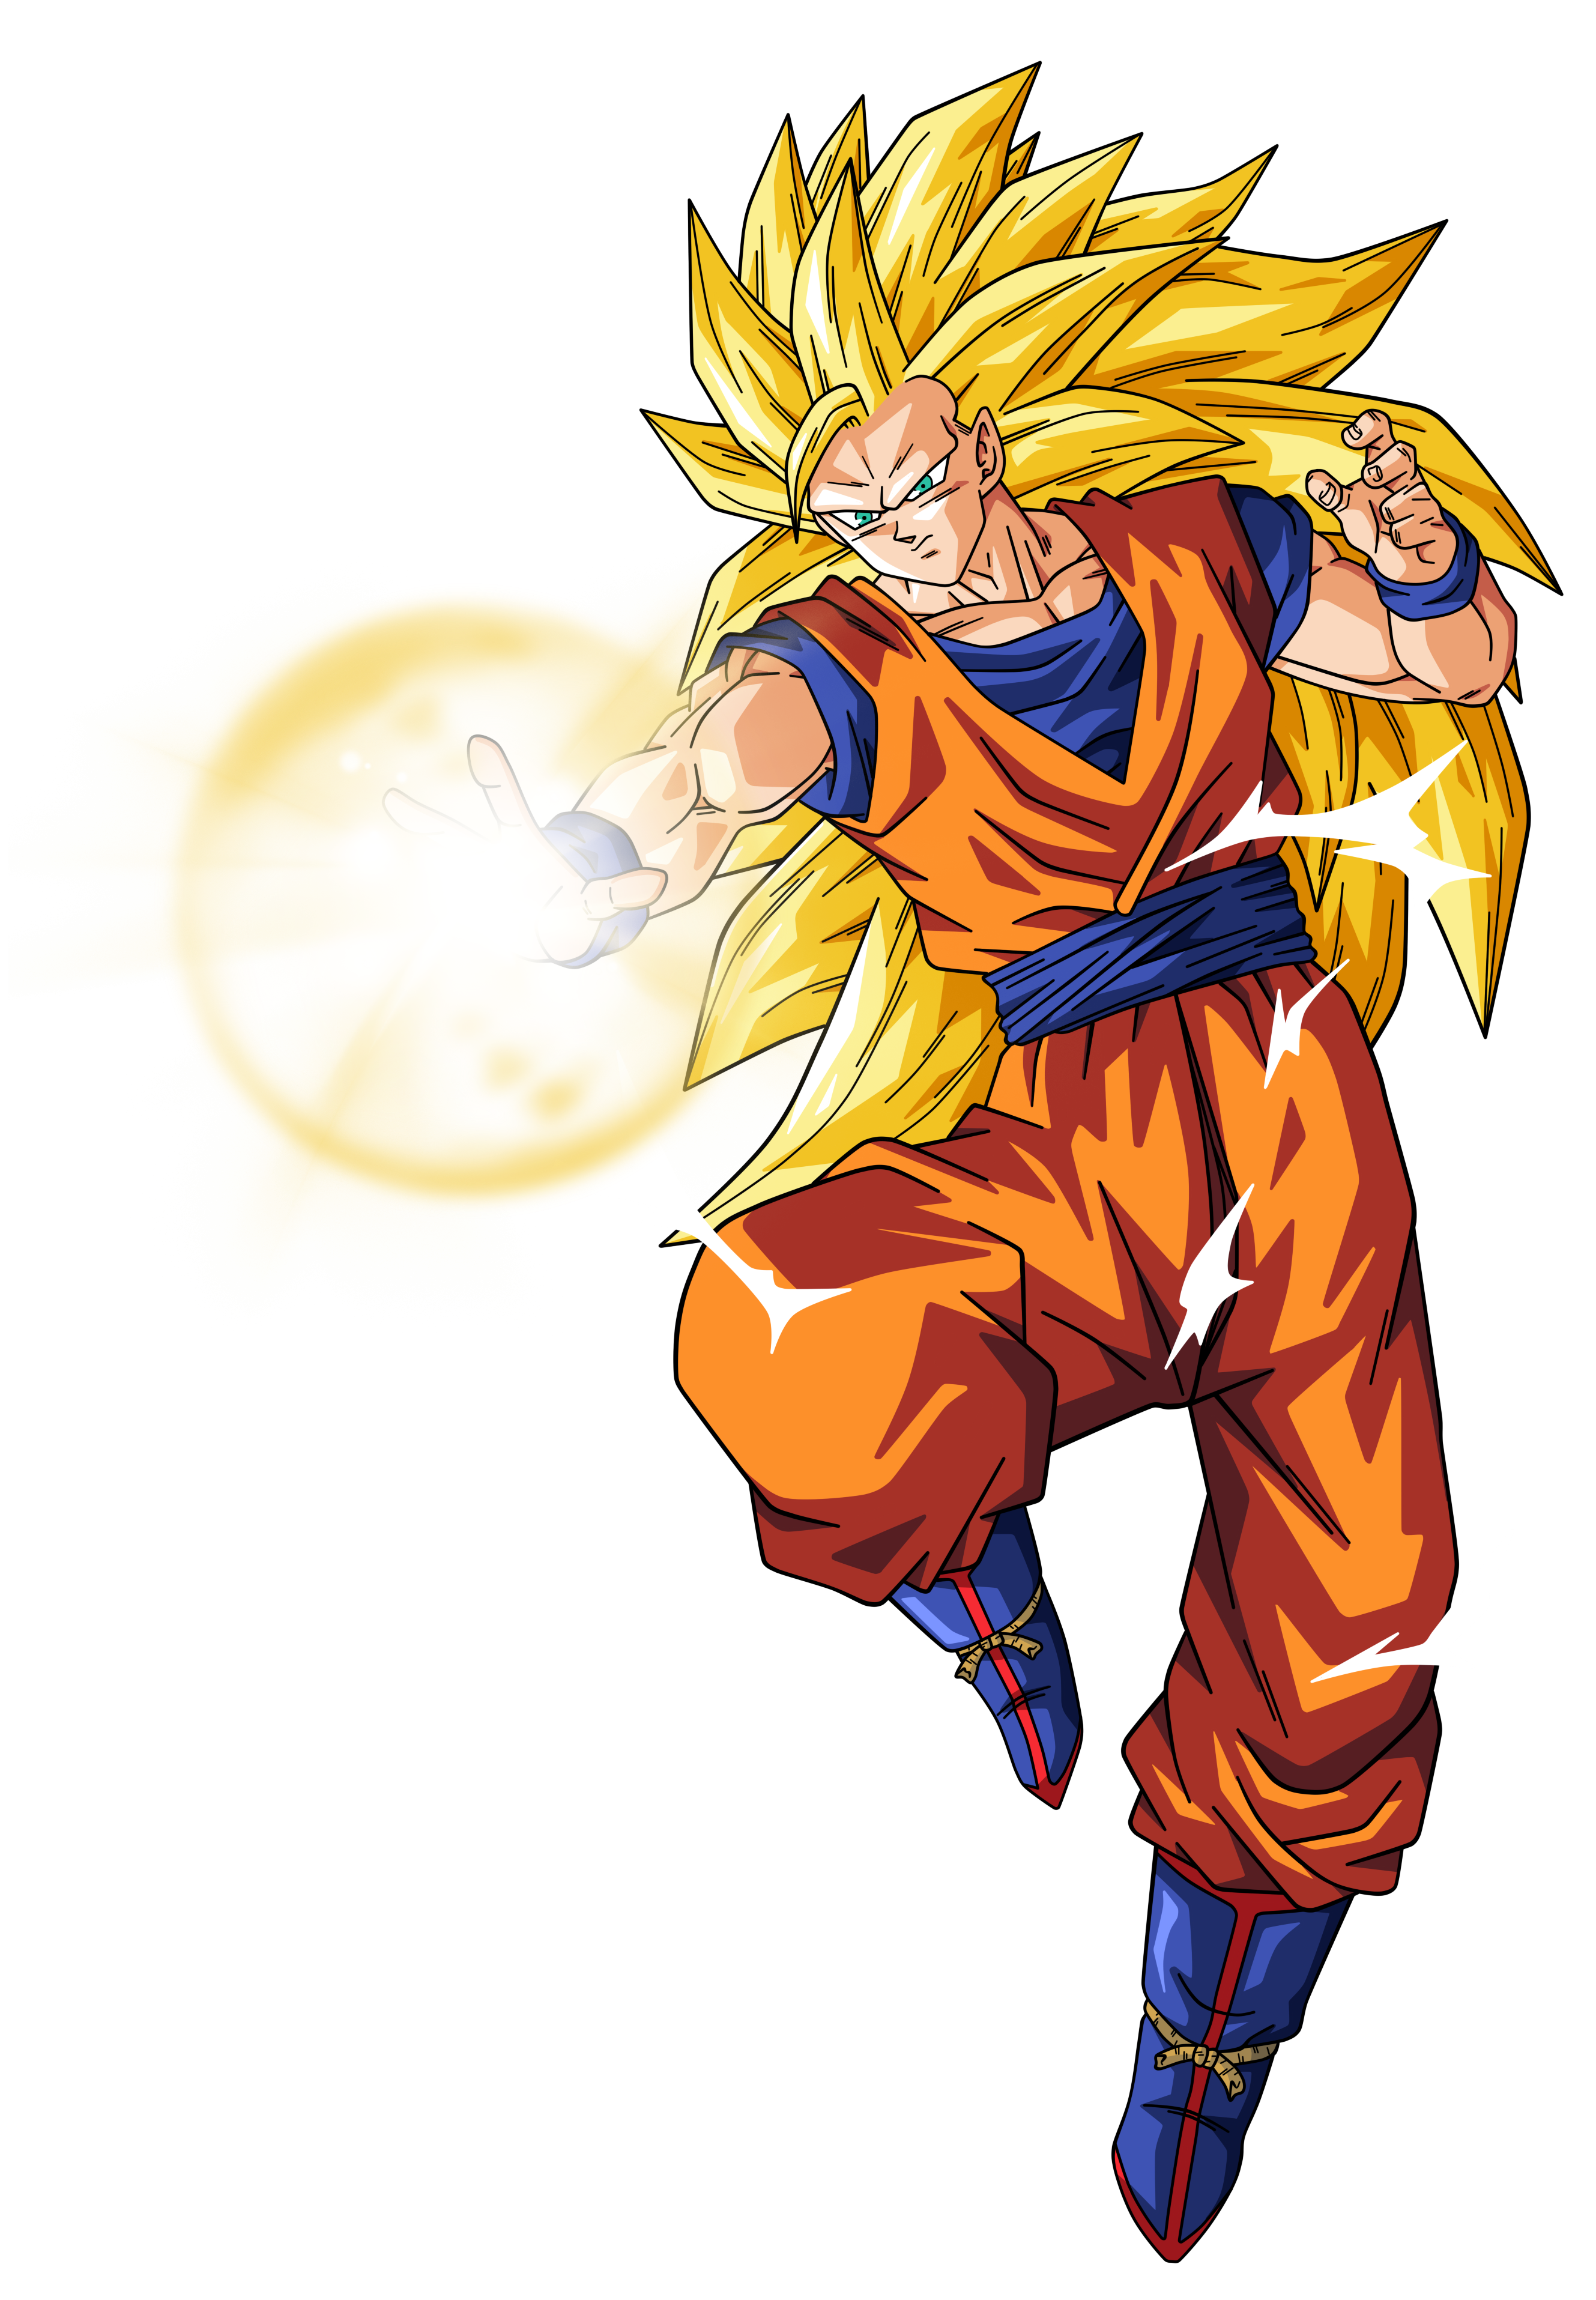 Goku super saiyan 3 by BardockSonic on DeviantArt